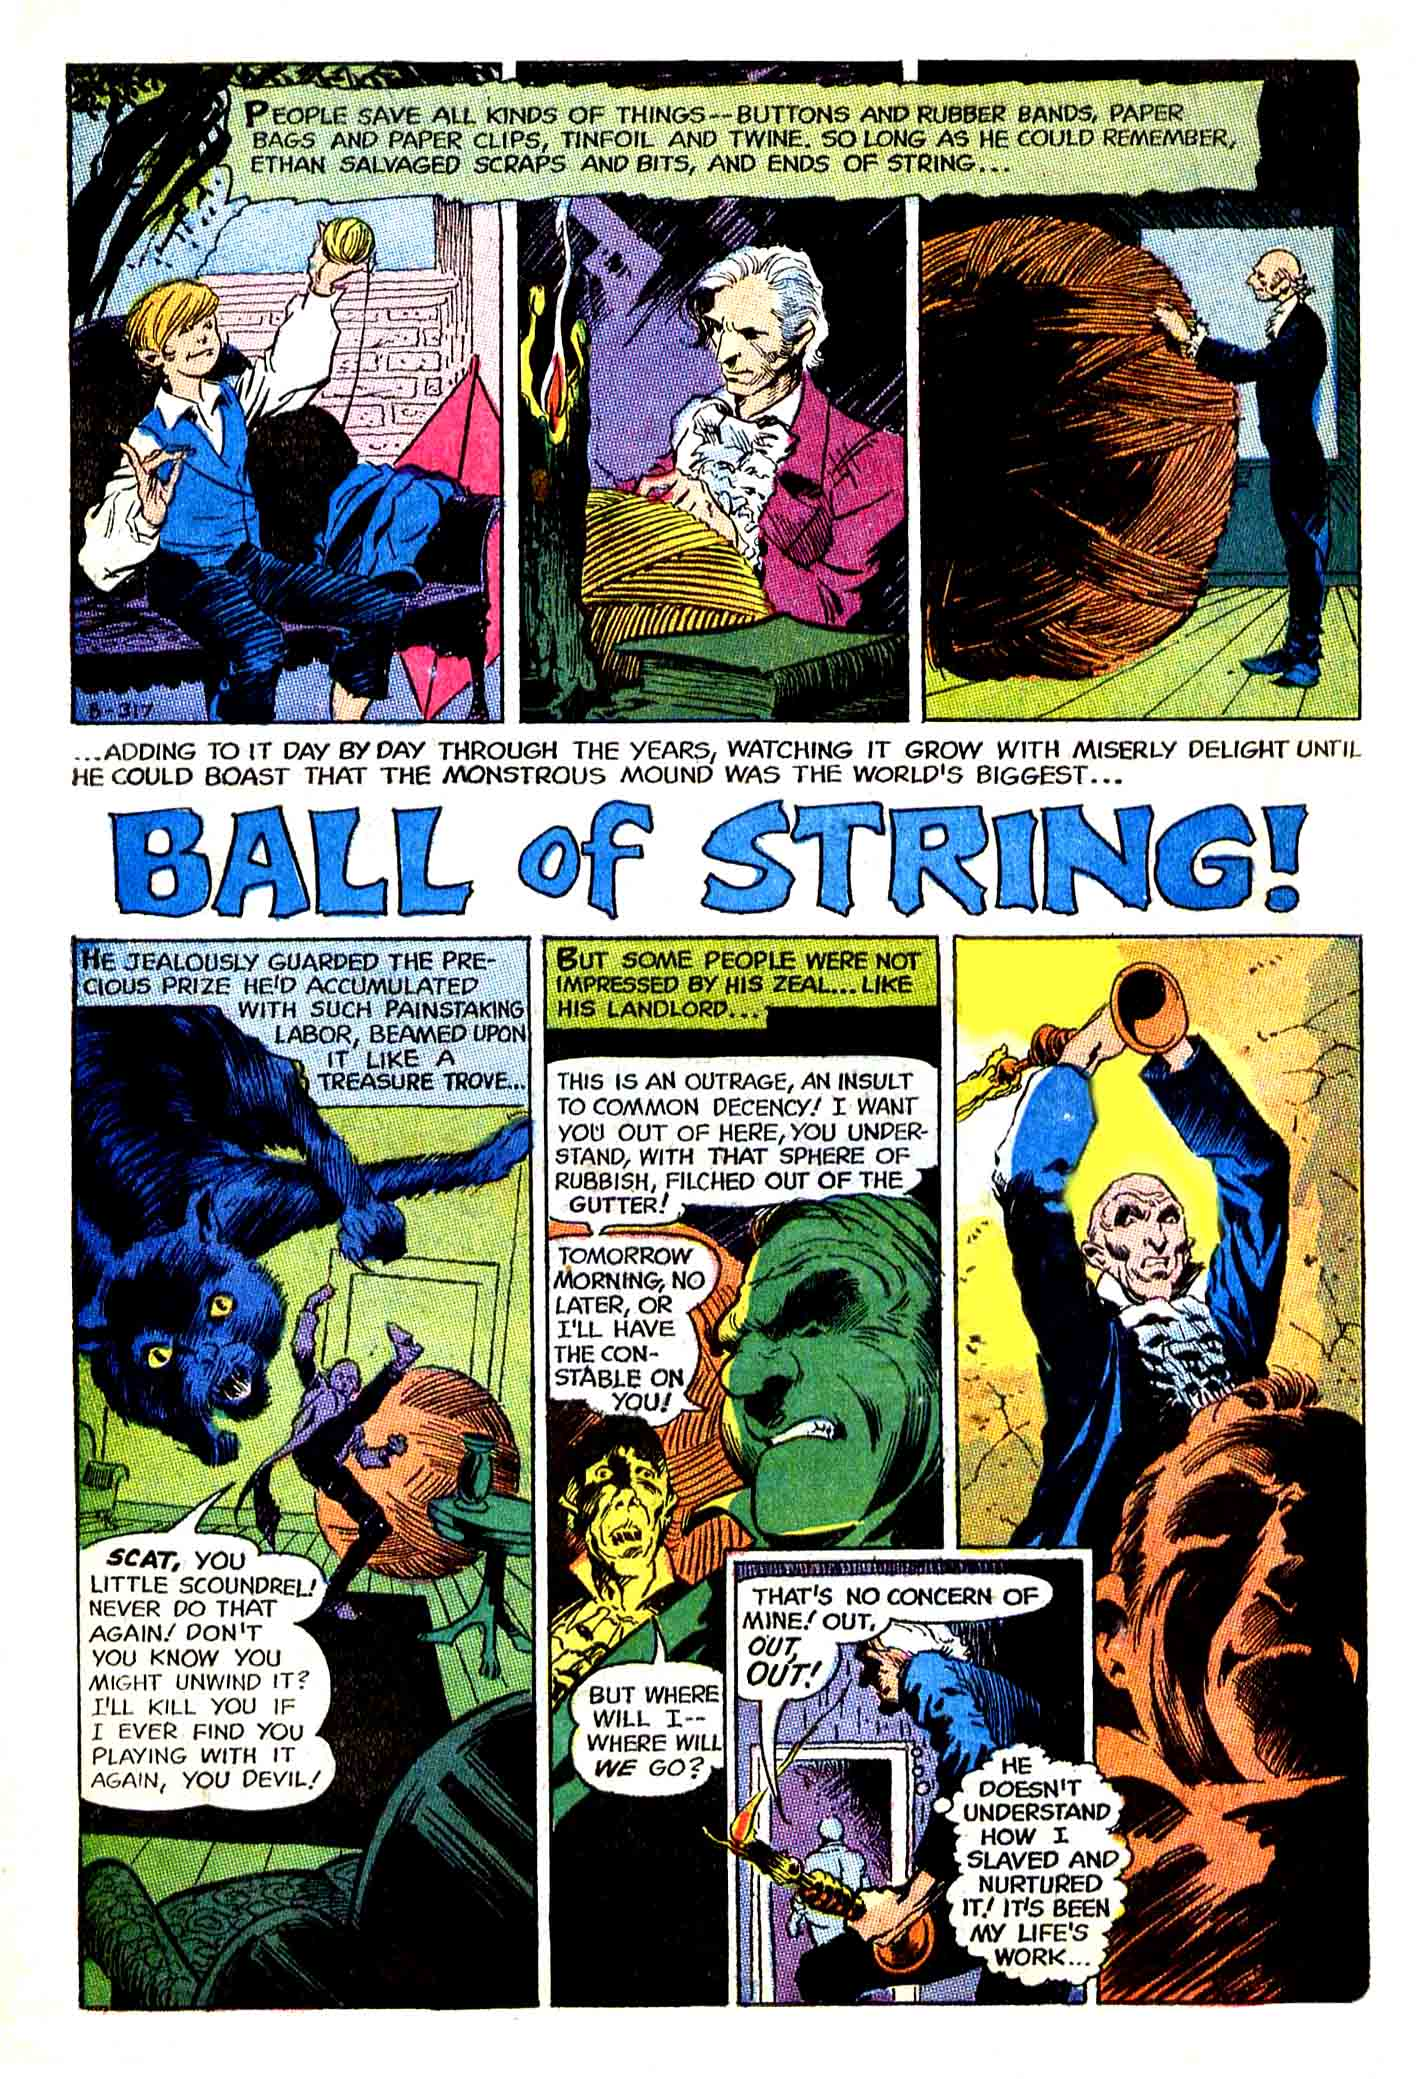 Ball of String! from The Unexpected  #116